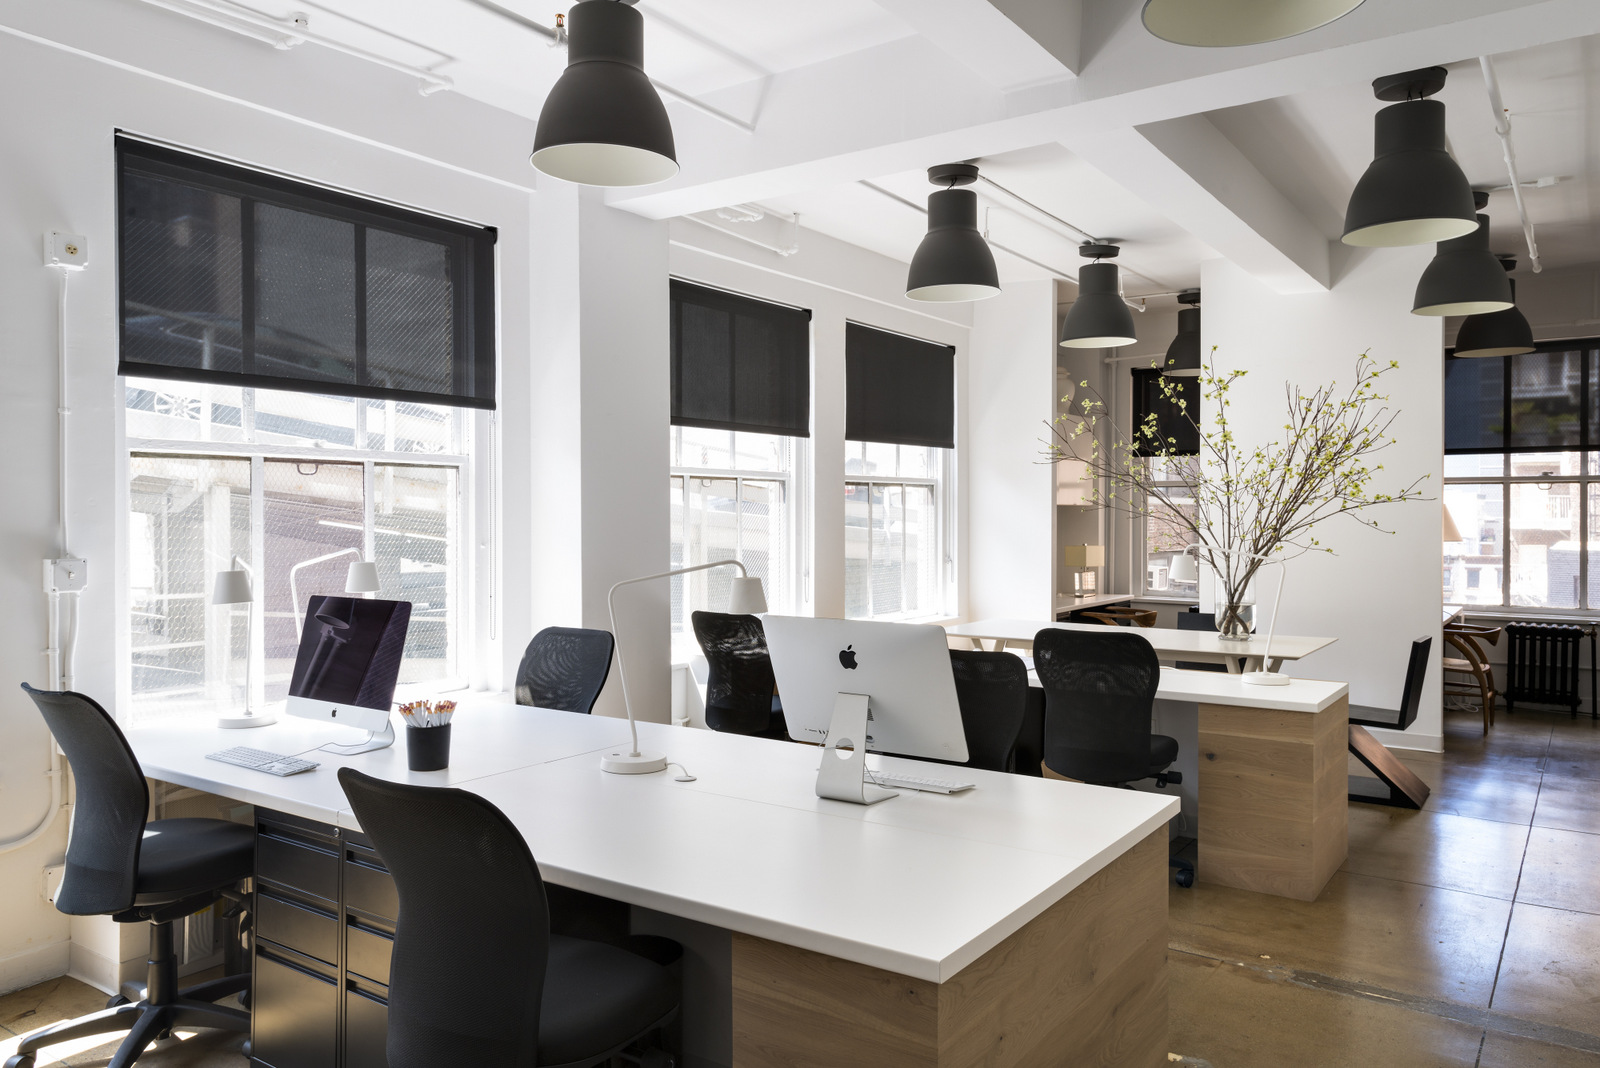 the-best-city-office-design-home-interior-trends-pictures-ideas-for-two-graphic-inspiration-contemporary-small-traditional-designs-images-tips-modern-uk-gorgeous-inspirations-on-a-.jpg